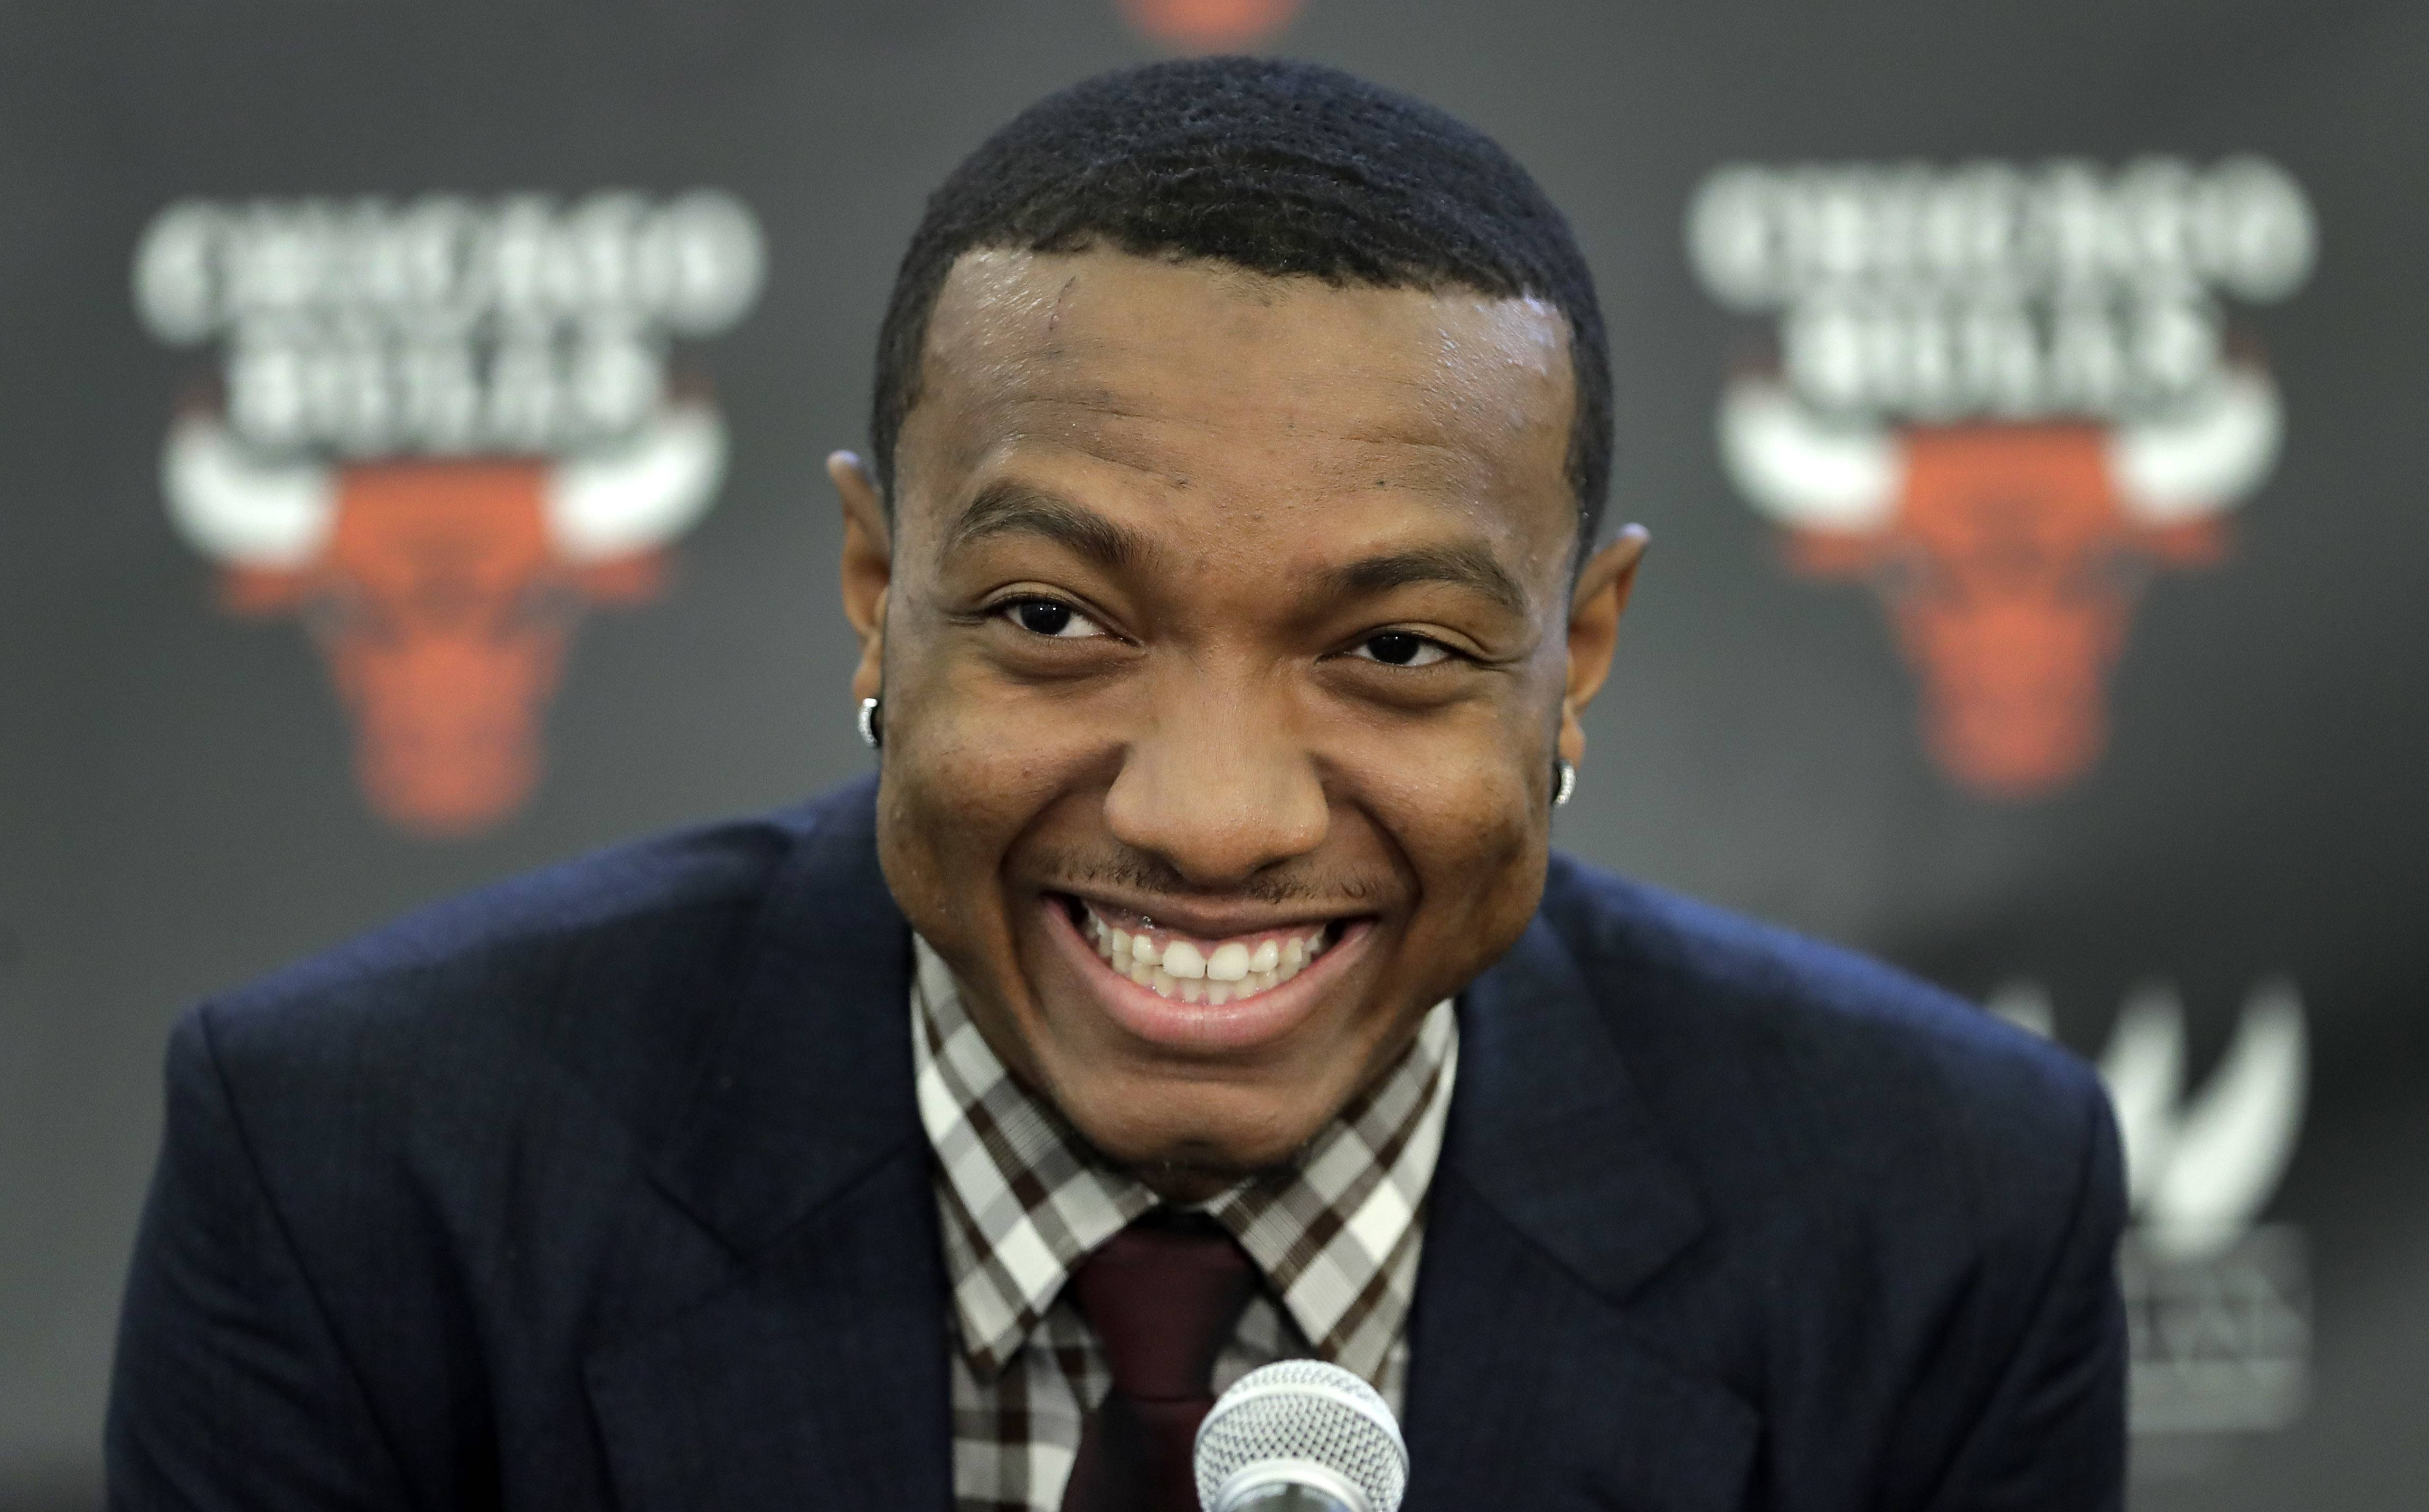 Bulls' Wendell Carter Jr.: 'As long as we're winning, that's all I really care about'